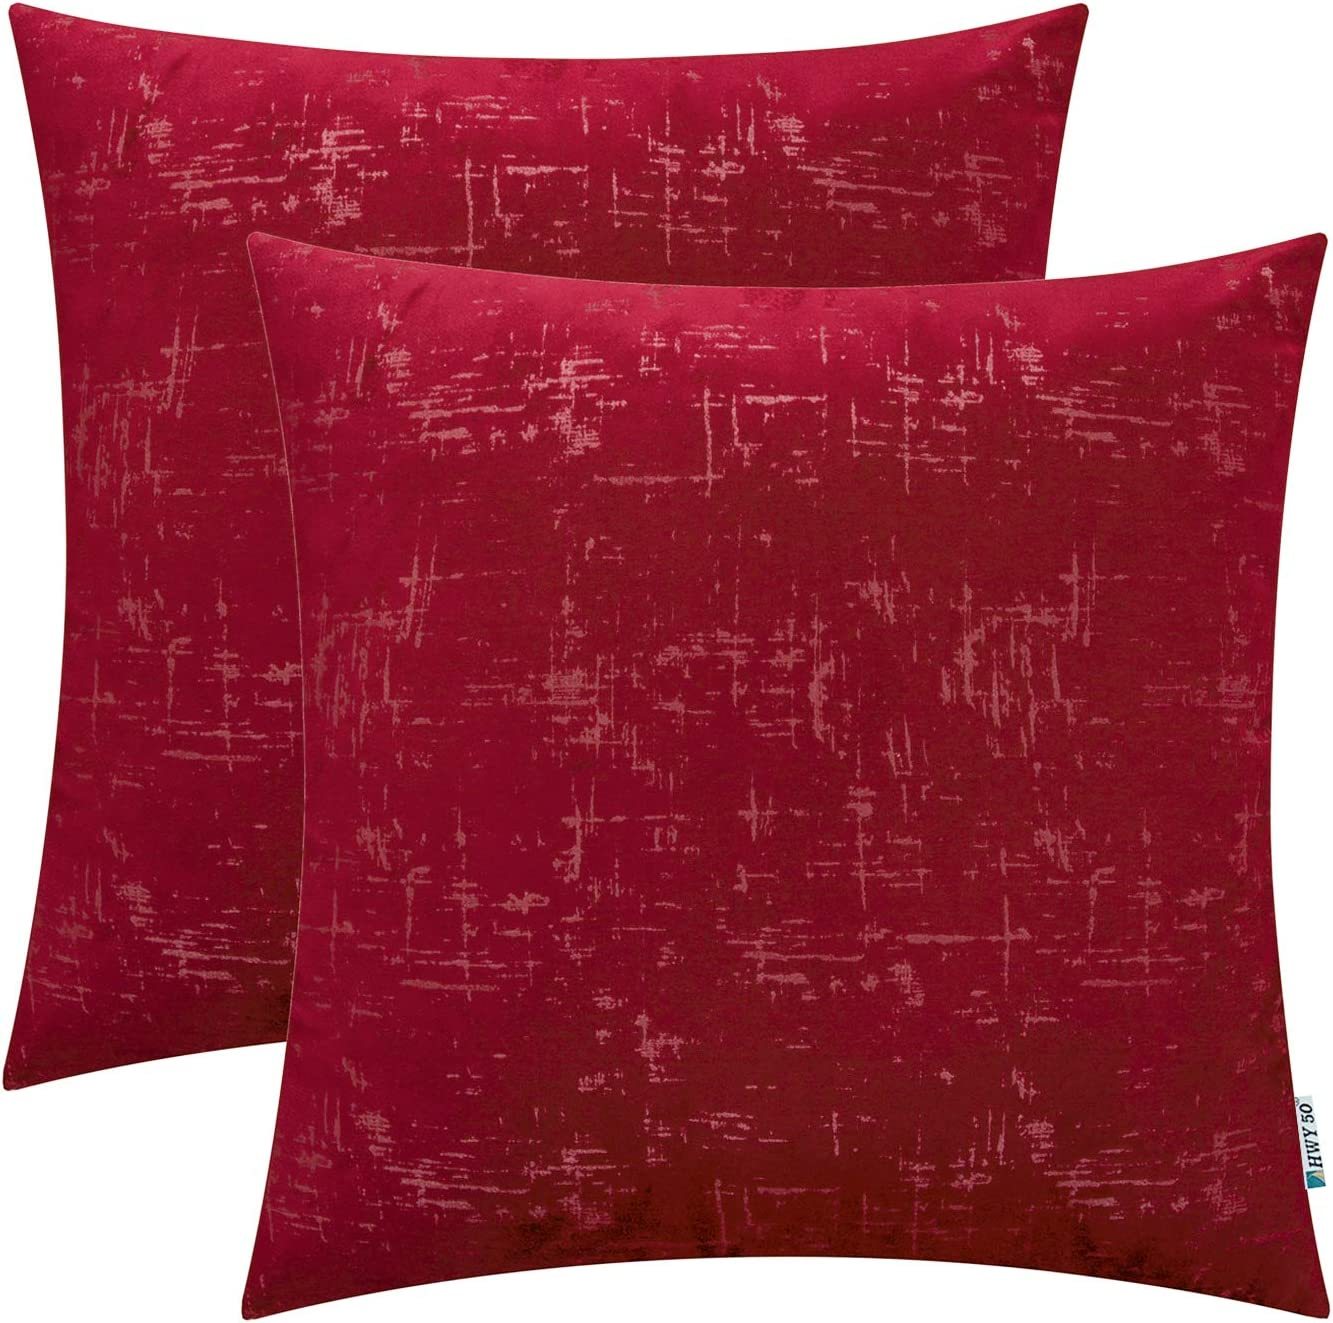 HWY 50 Velvet Soft Solid Decorative Throw Pillow Covers Set Cushion Cases for Couch Bed Sofa Burgundy Comfy Wine Red Decor 20 x 20 inch Pack of 2